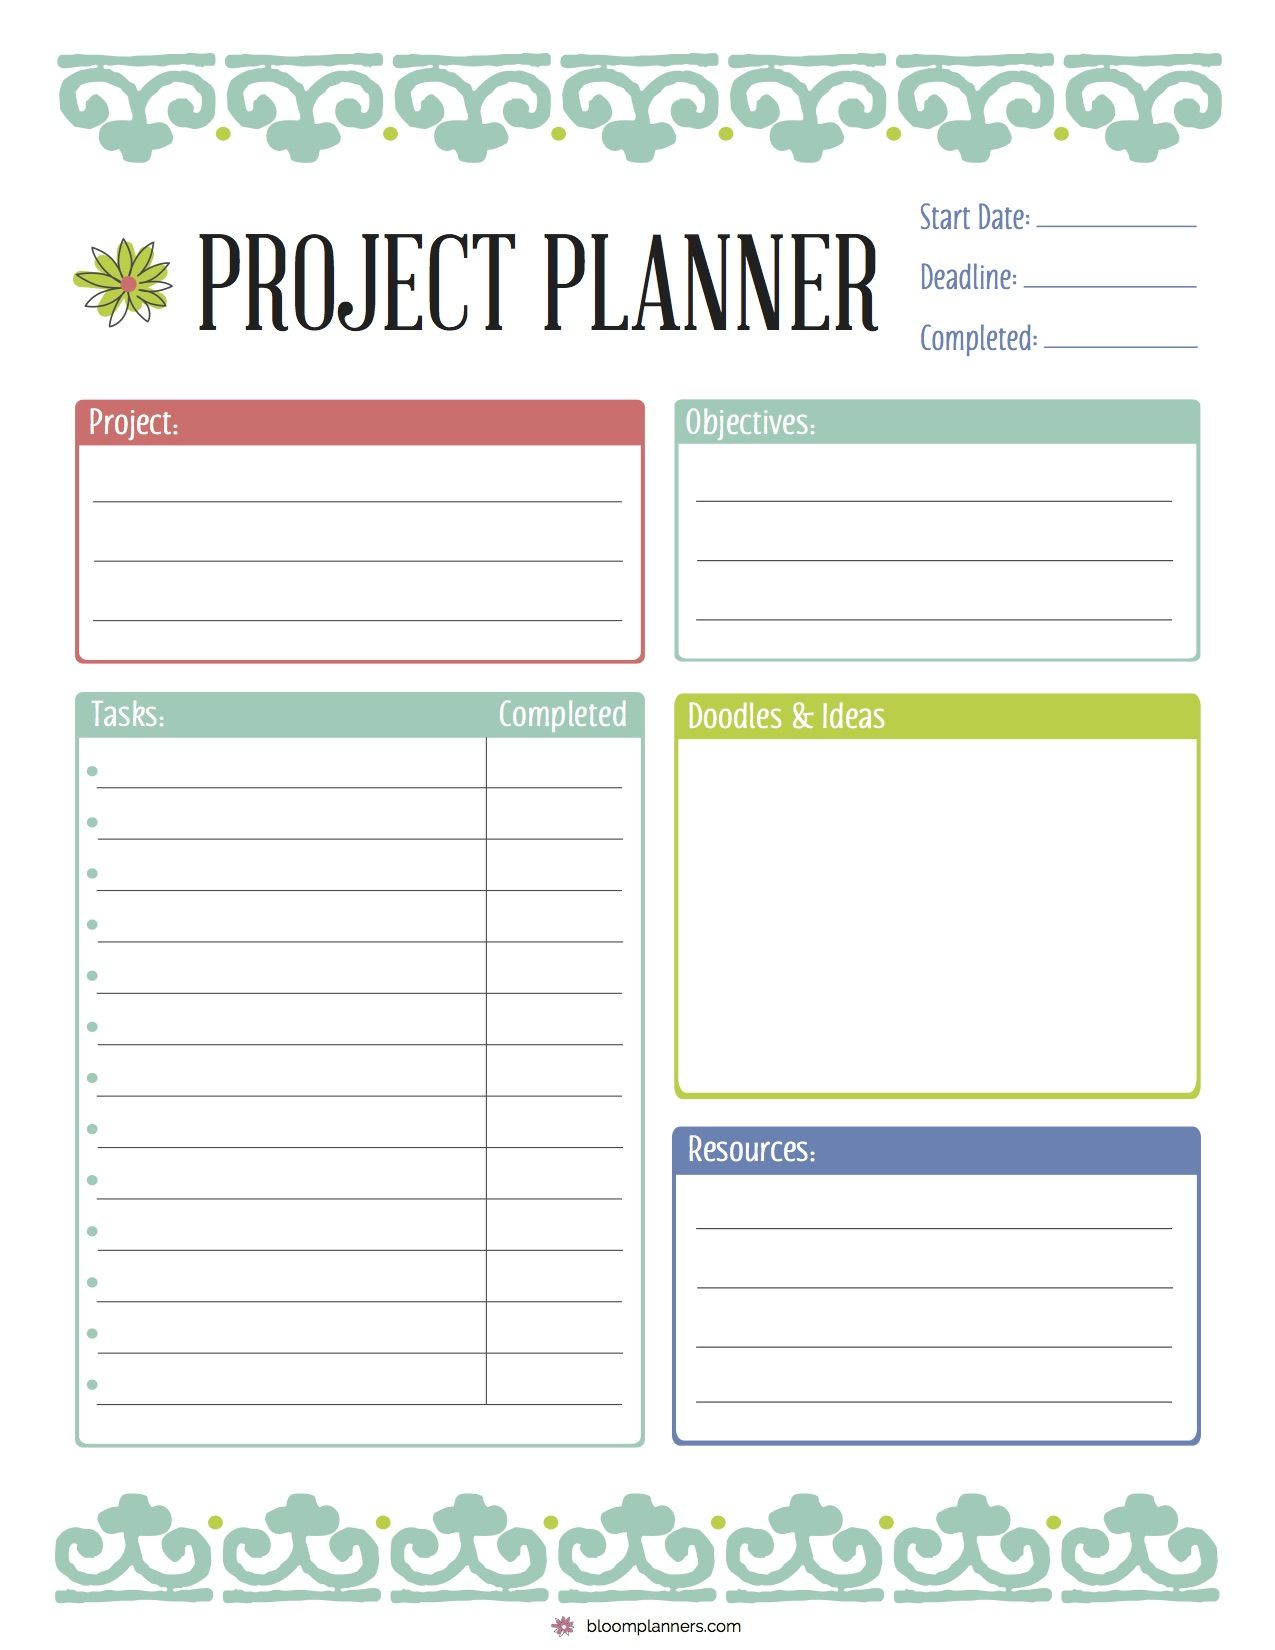 photograph regarding Free Printable Planners named Totally free Printable Undertaking Planner towards bloom every day planners